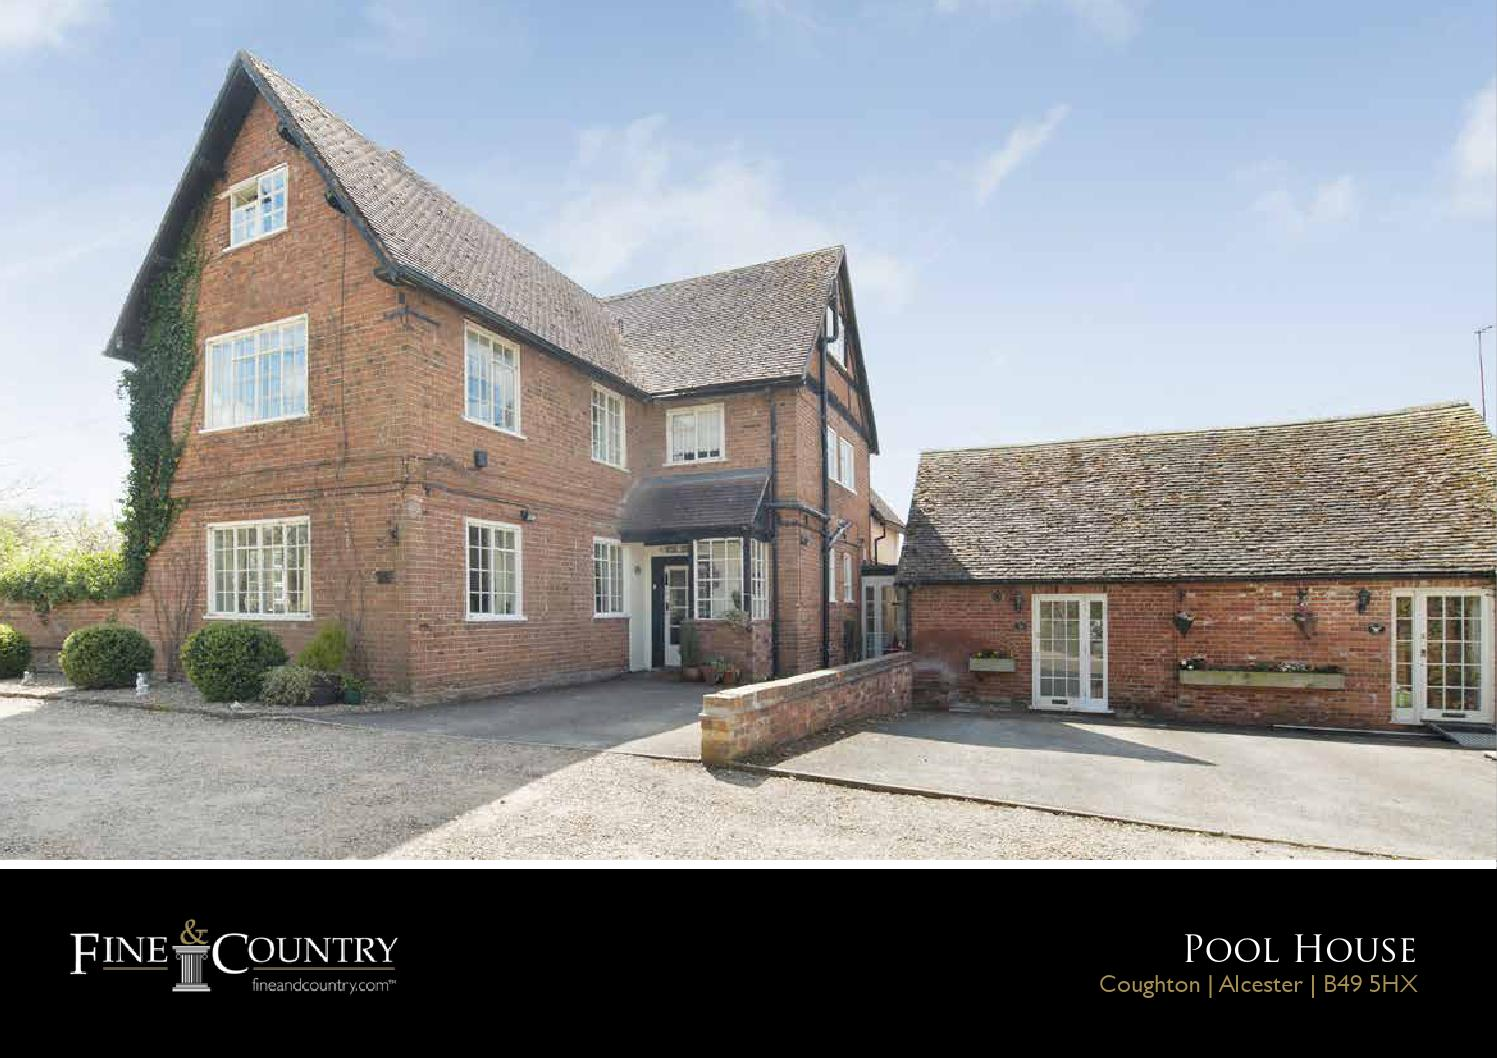 Bed And Breakfast Alcester Pool House Coughton Alcester By Fine And Country Studio Issuu